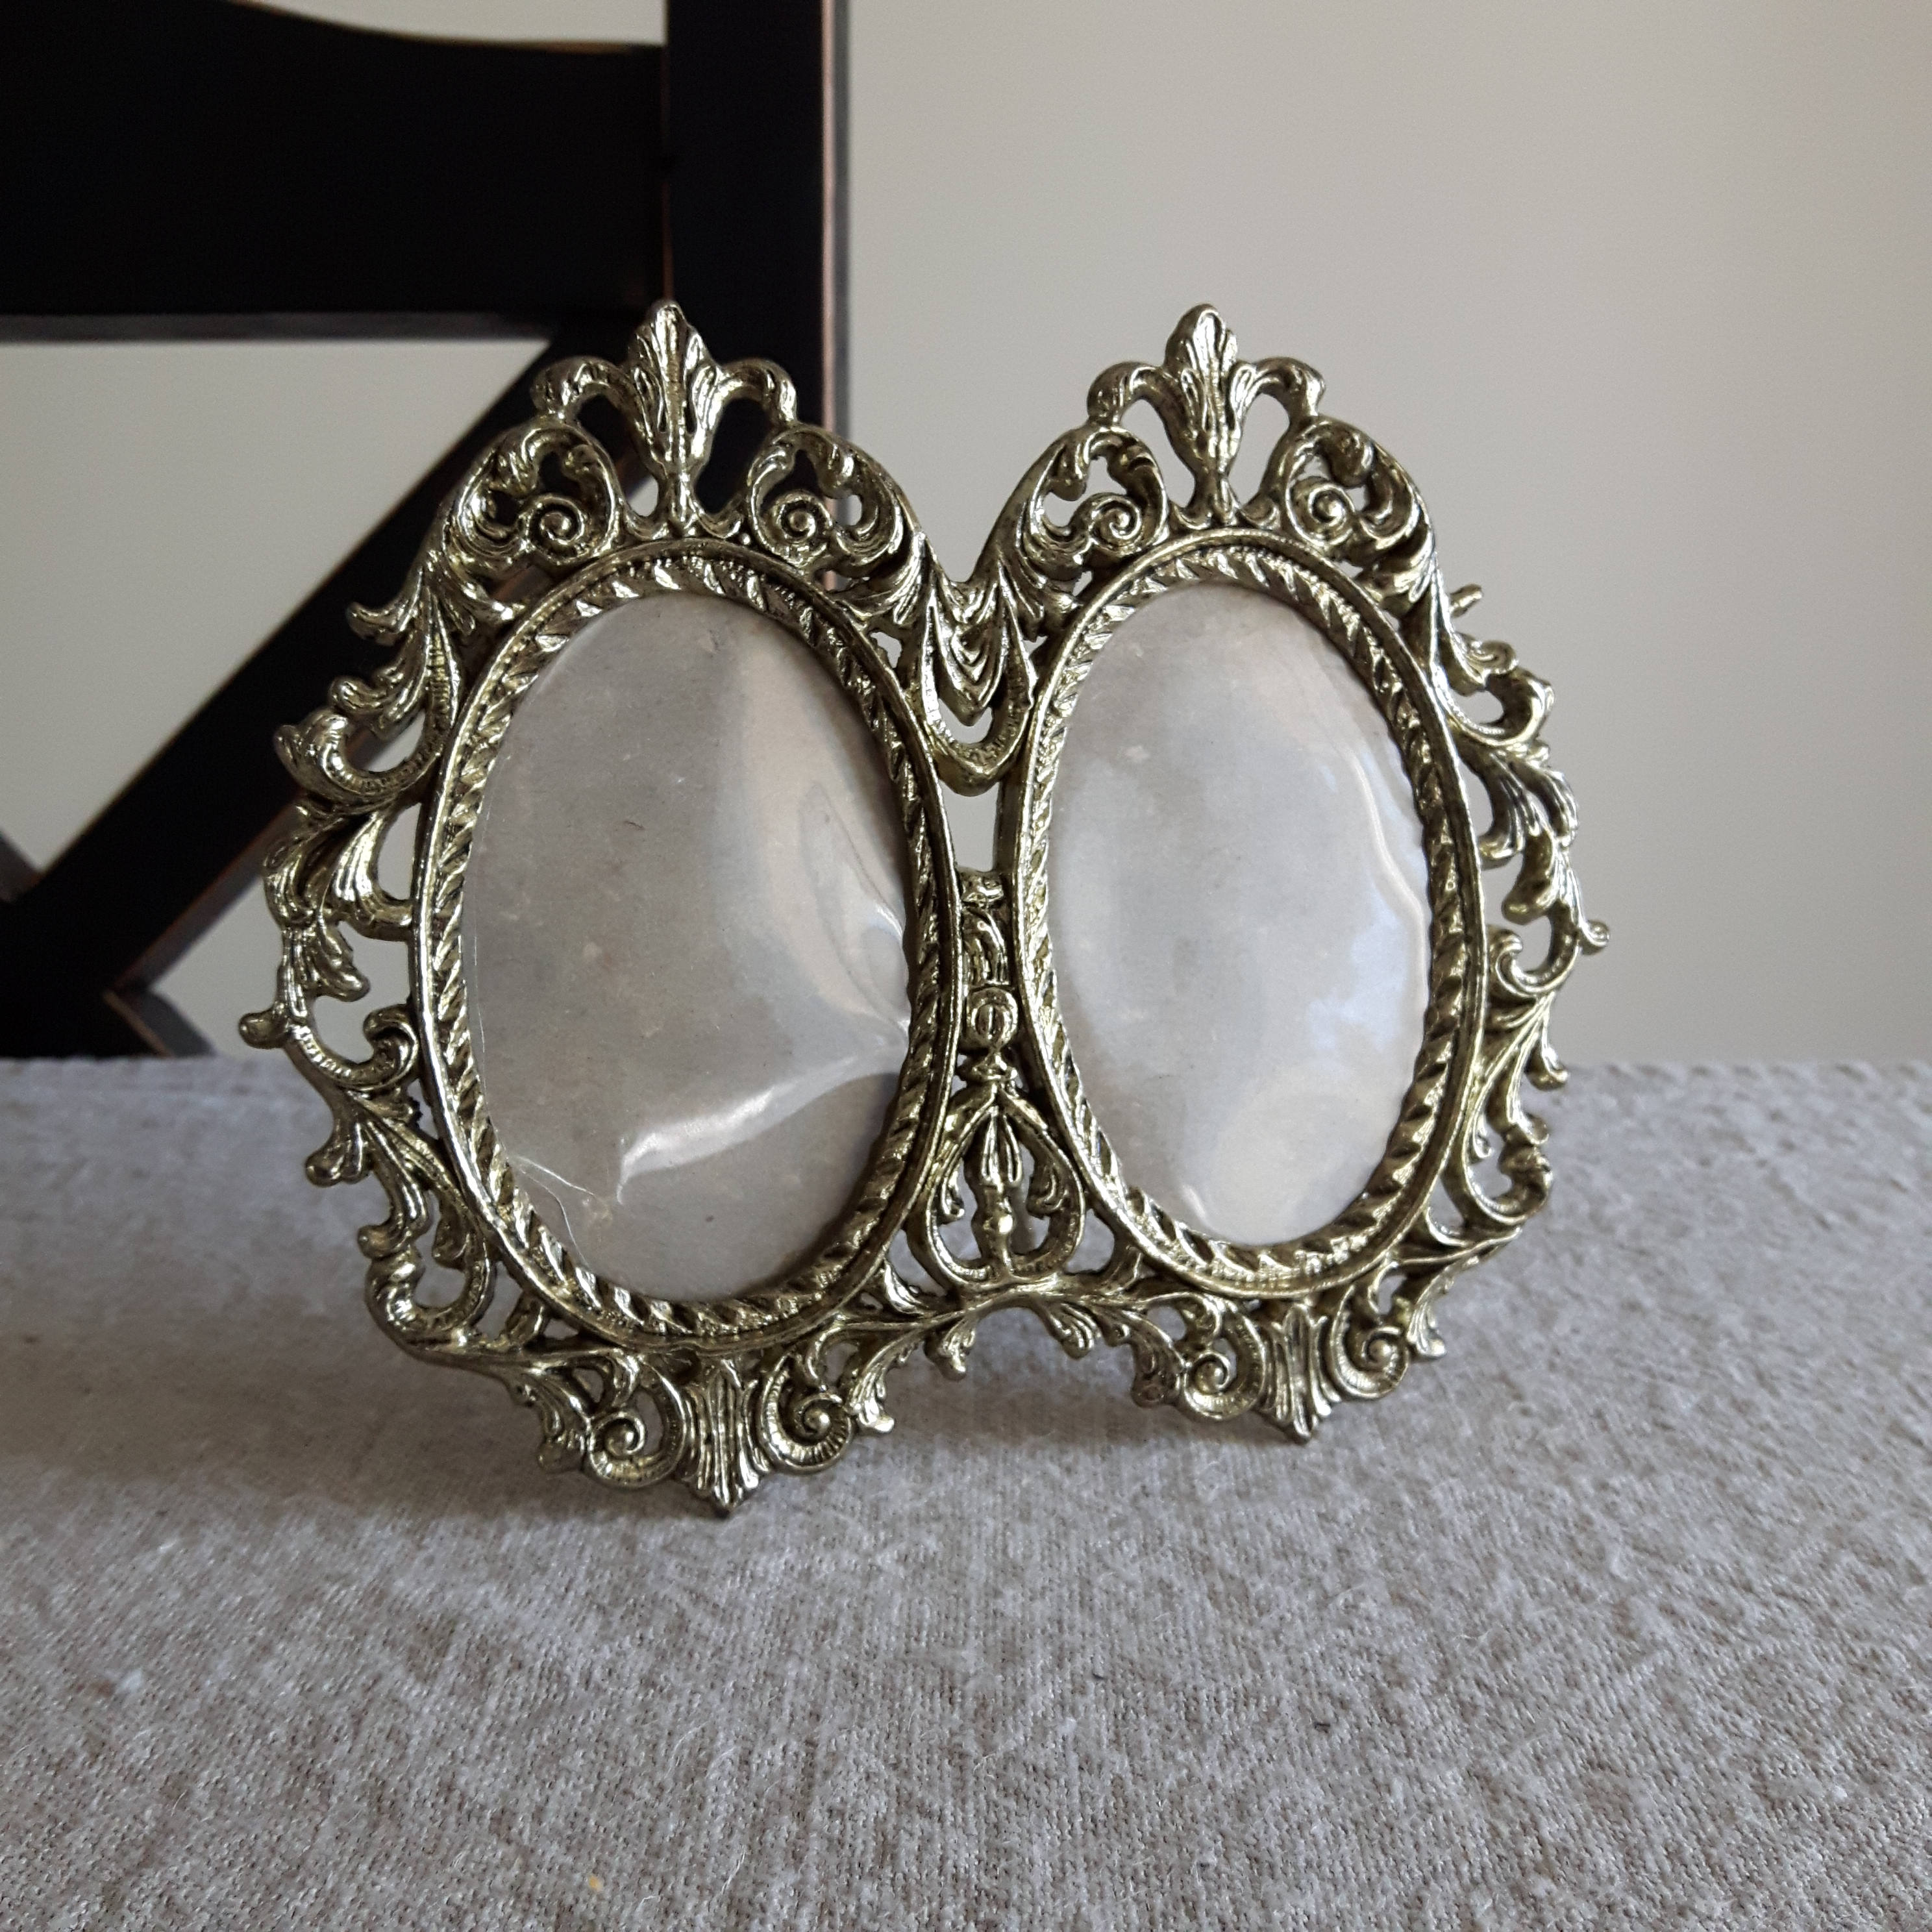 2 12 x 3 12 double oval gold tone metal picture frame 1970s sold by bluechickenvintage jeuxipadfo Image collections